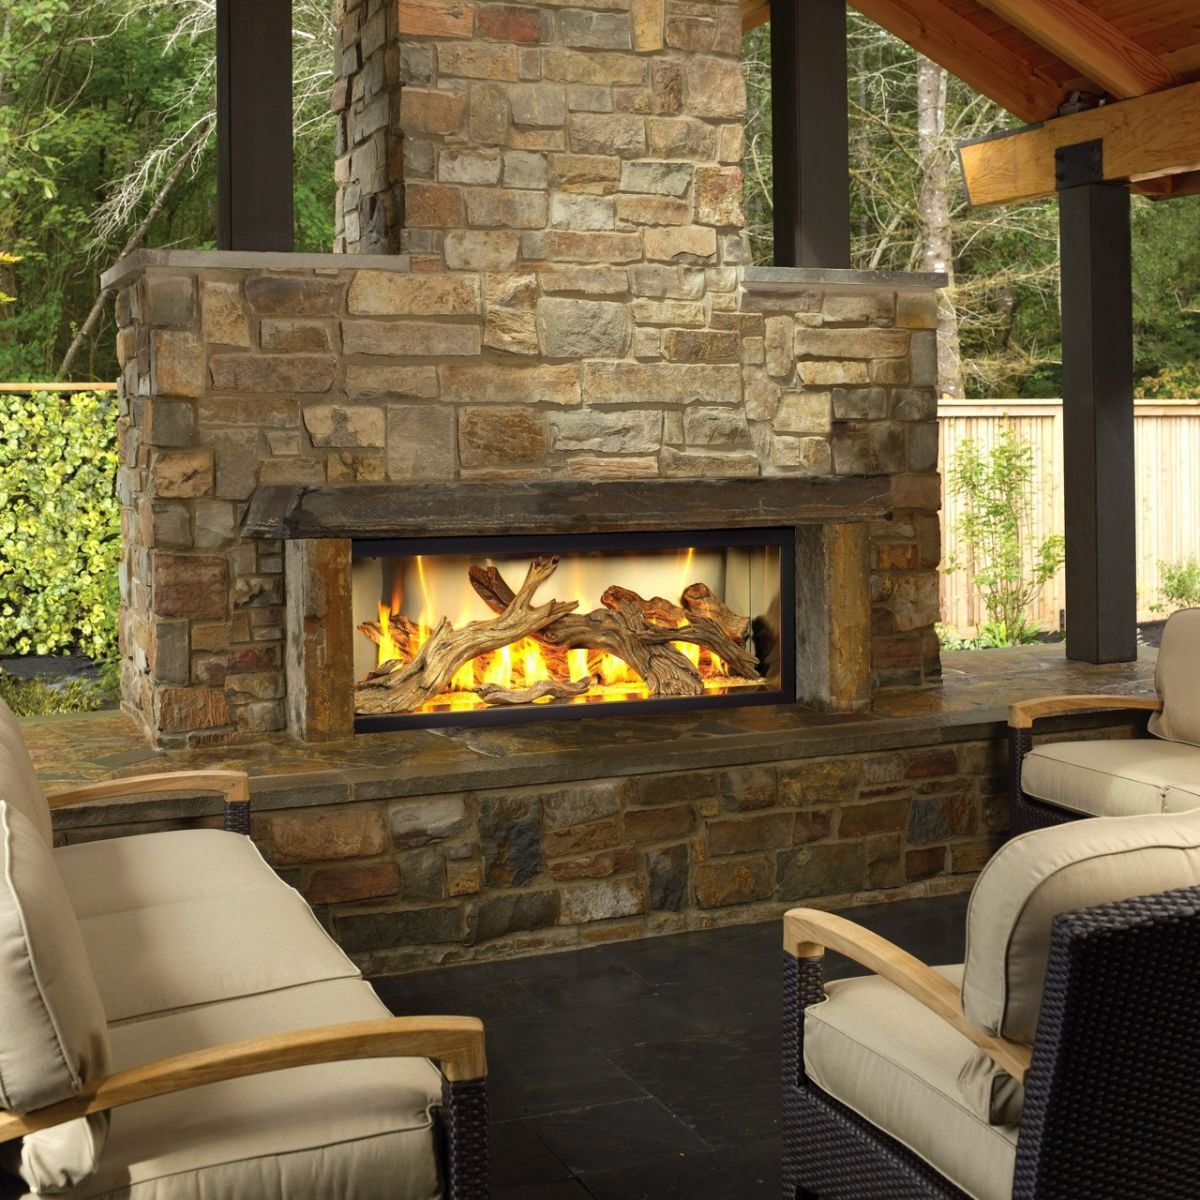 Outdoor Fireplace Designs | Colorado Springs Fire Pits And Outdoor  Fireplaces, Fire Pit Stores .